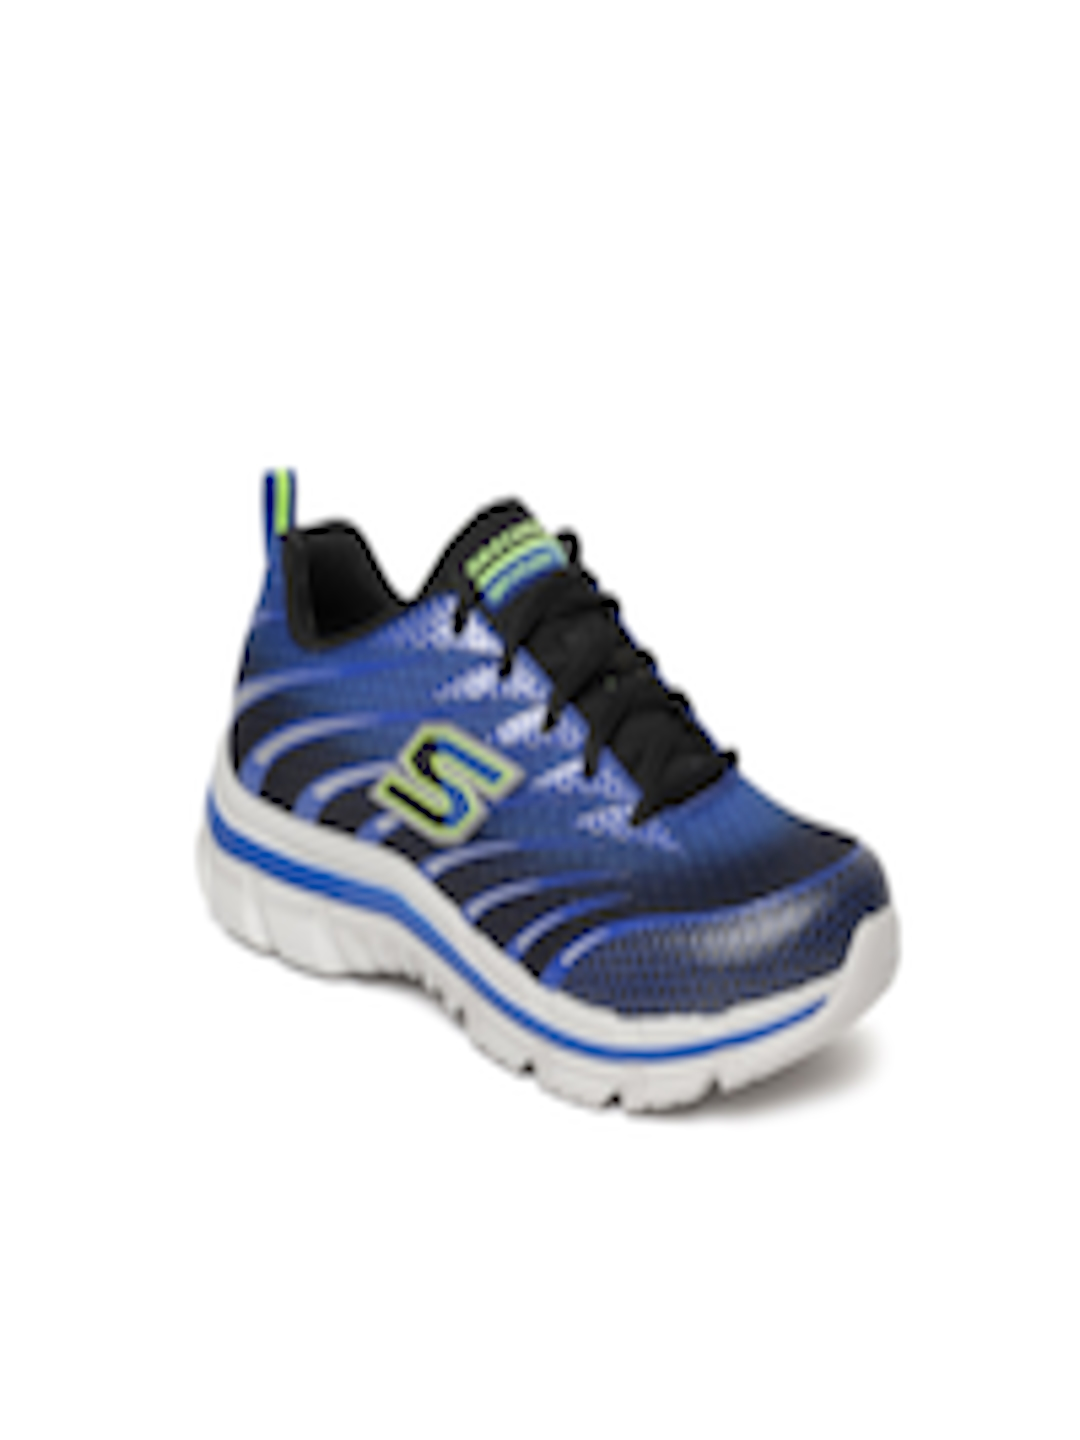 5b623bf3099c Buy Skechers Boys Blue Nitrate Training Or Gym Shoes - Sports Shoes for Boys  6672719